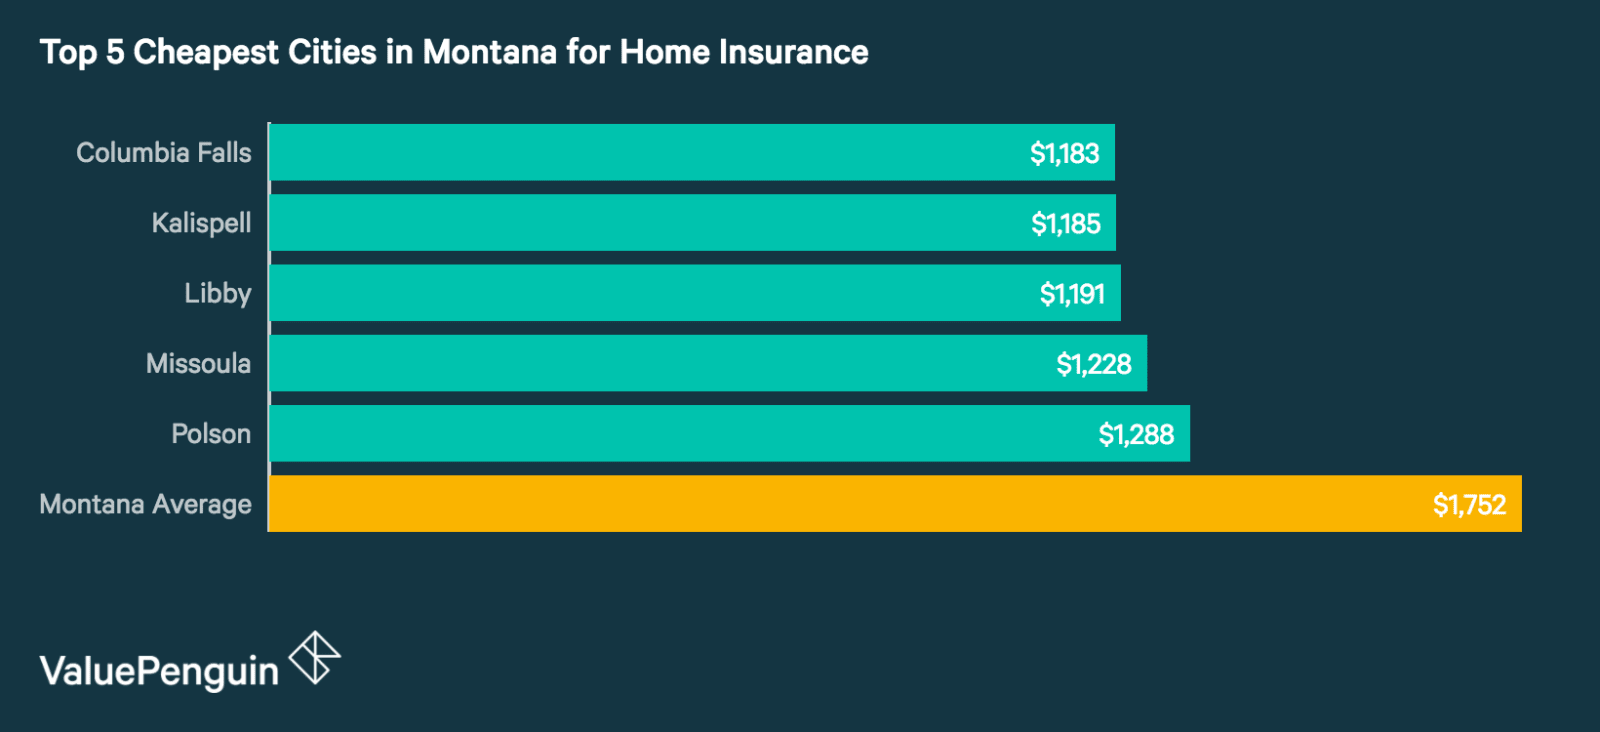 Top 5 Cheapest Cities in Montana for Homeowners Insurance